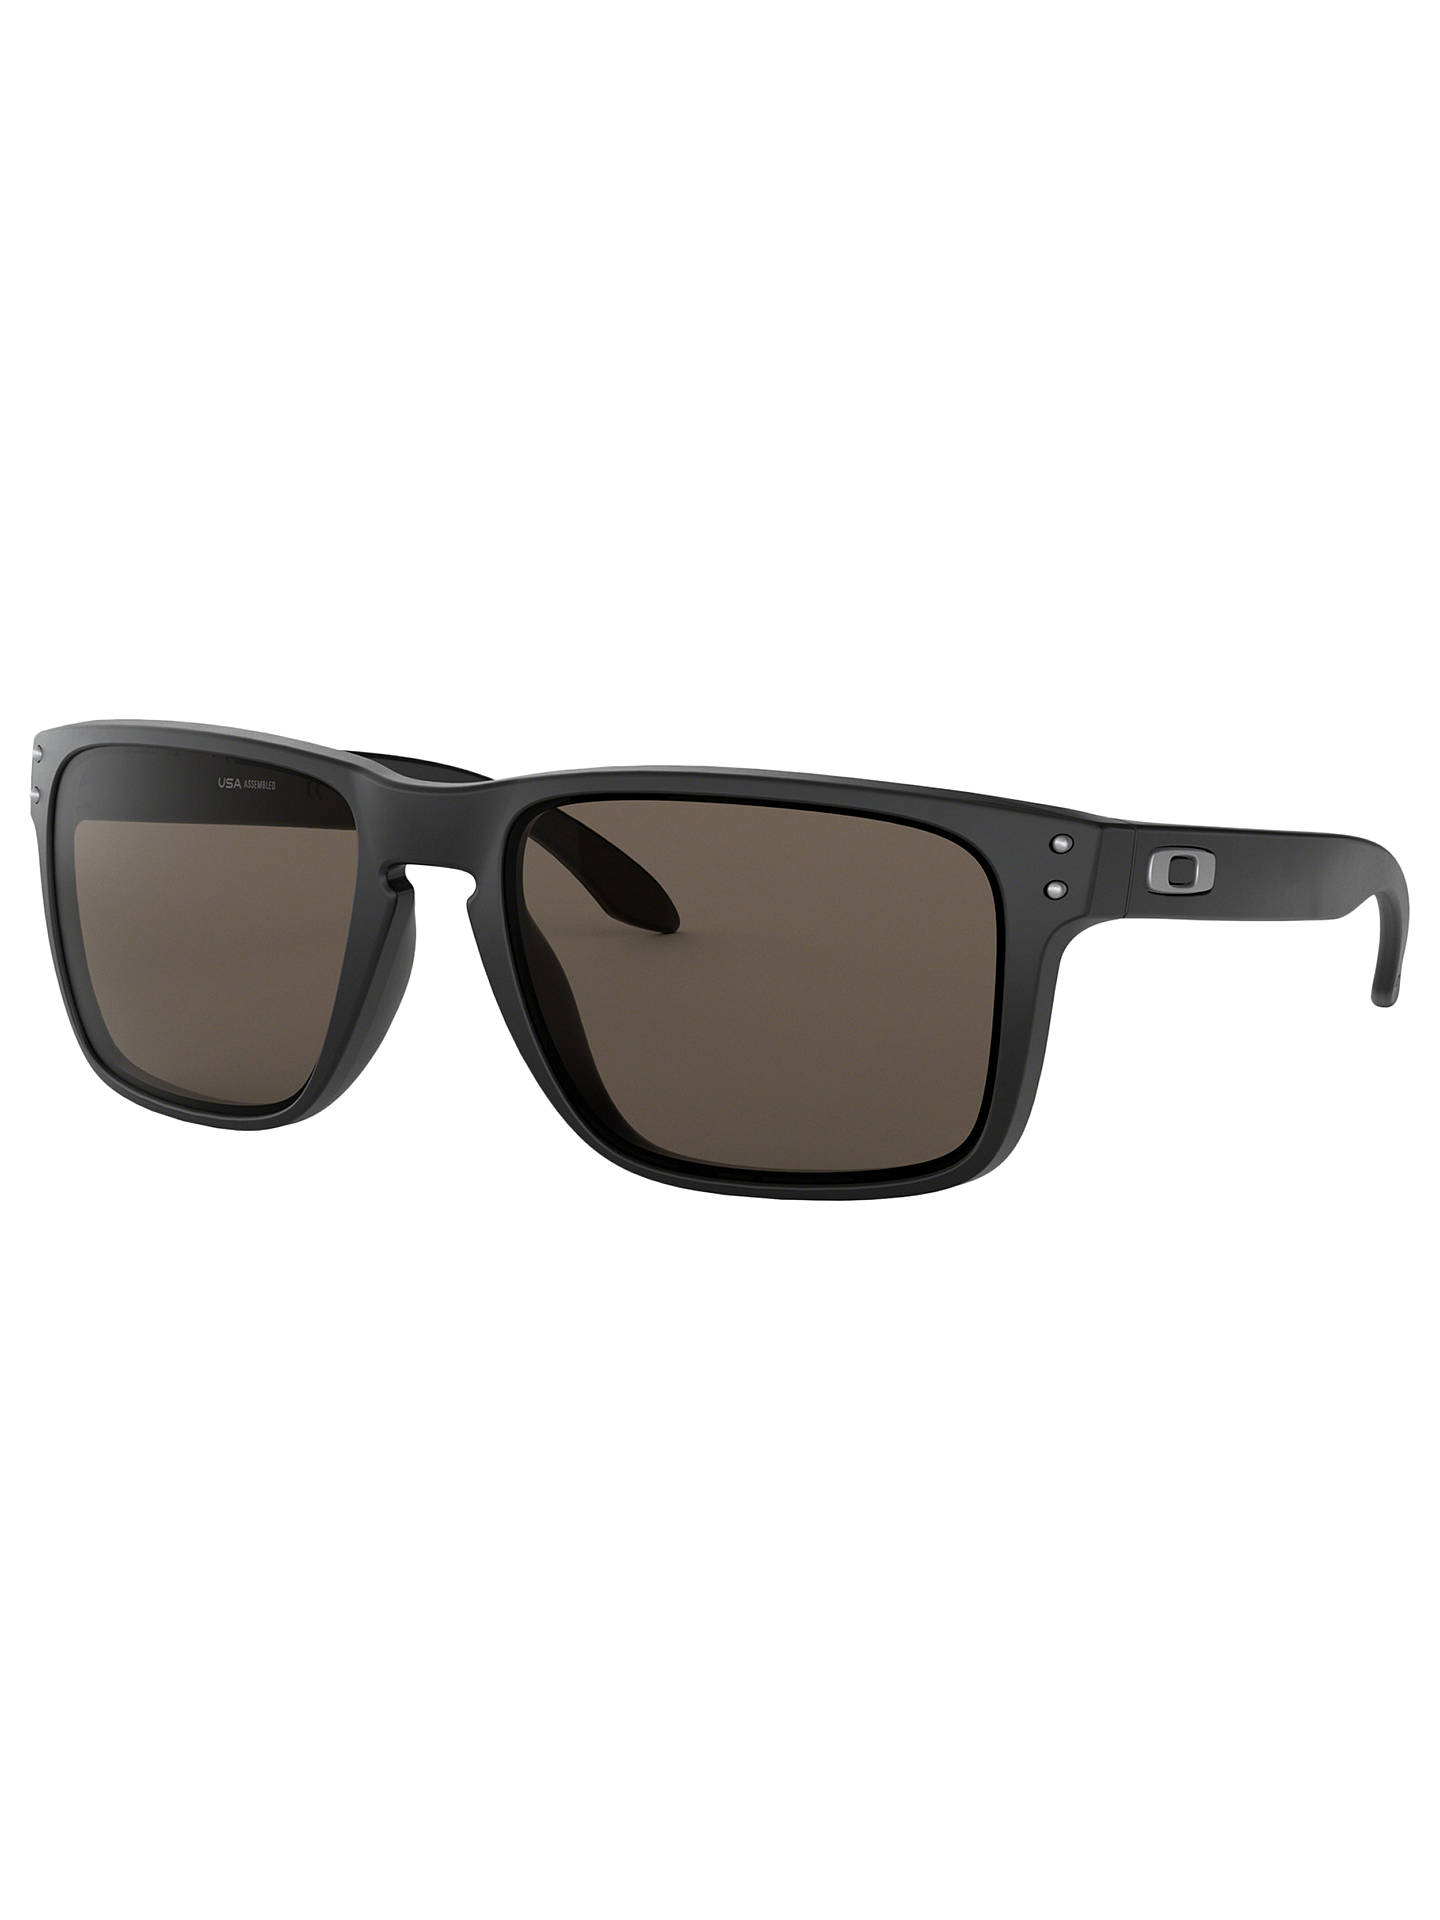 2da53e93c9 Oakley OO9417 Men s Holbrook XL Square Sunglasses at John Lewis ...